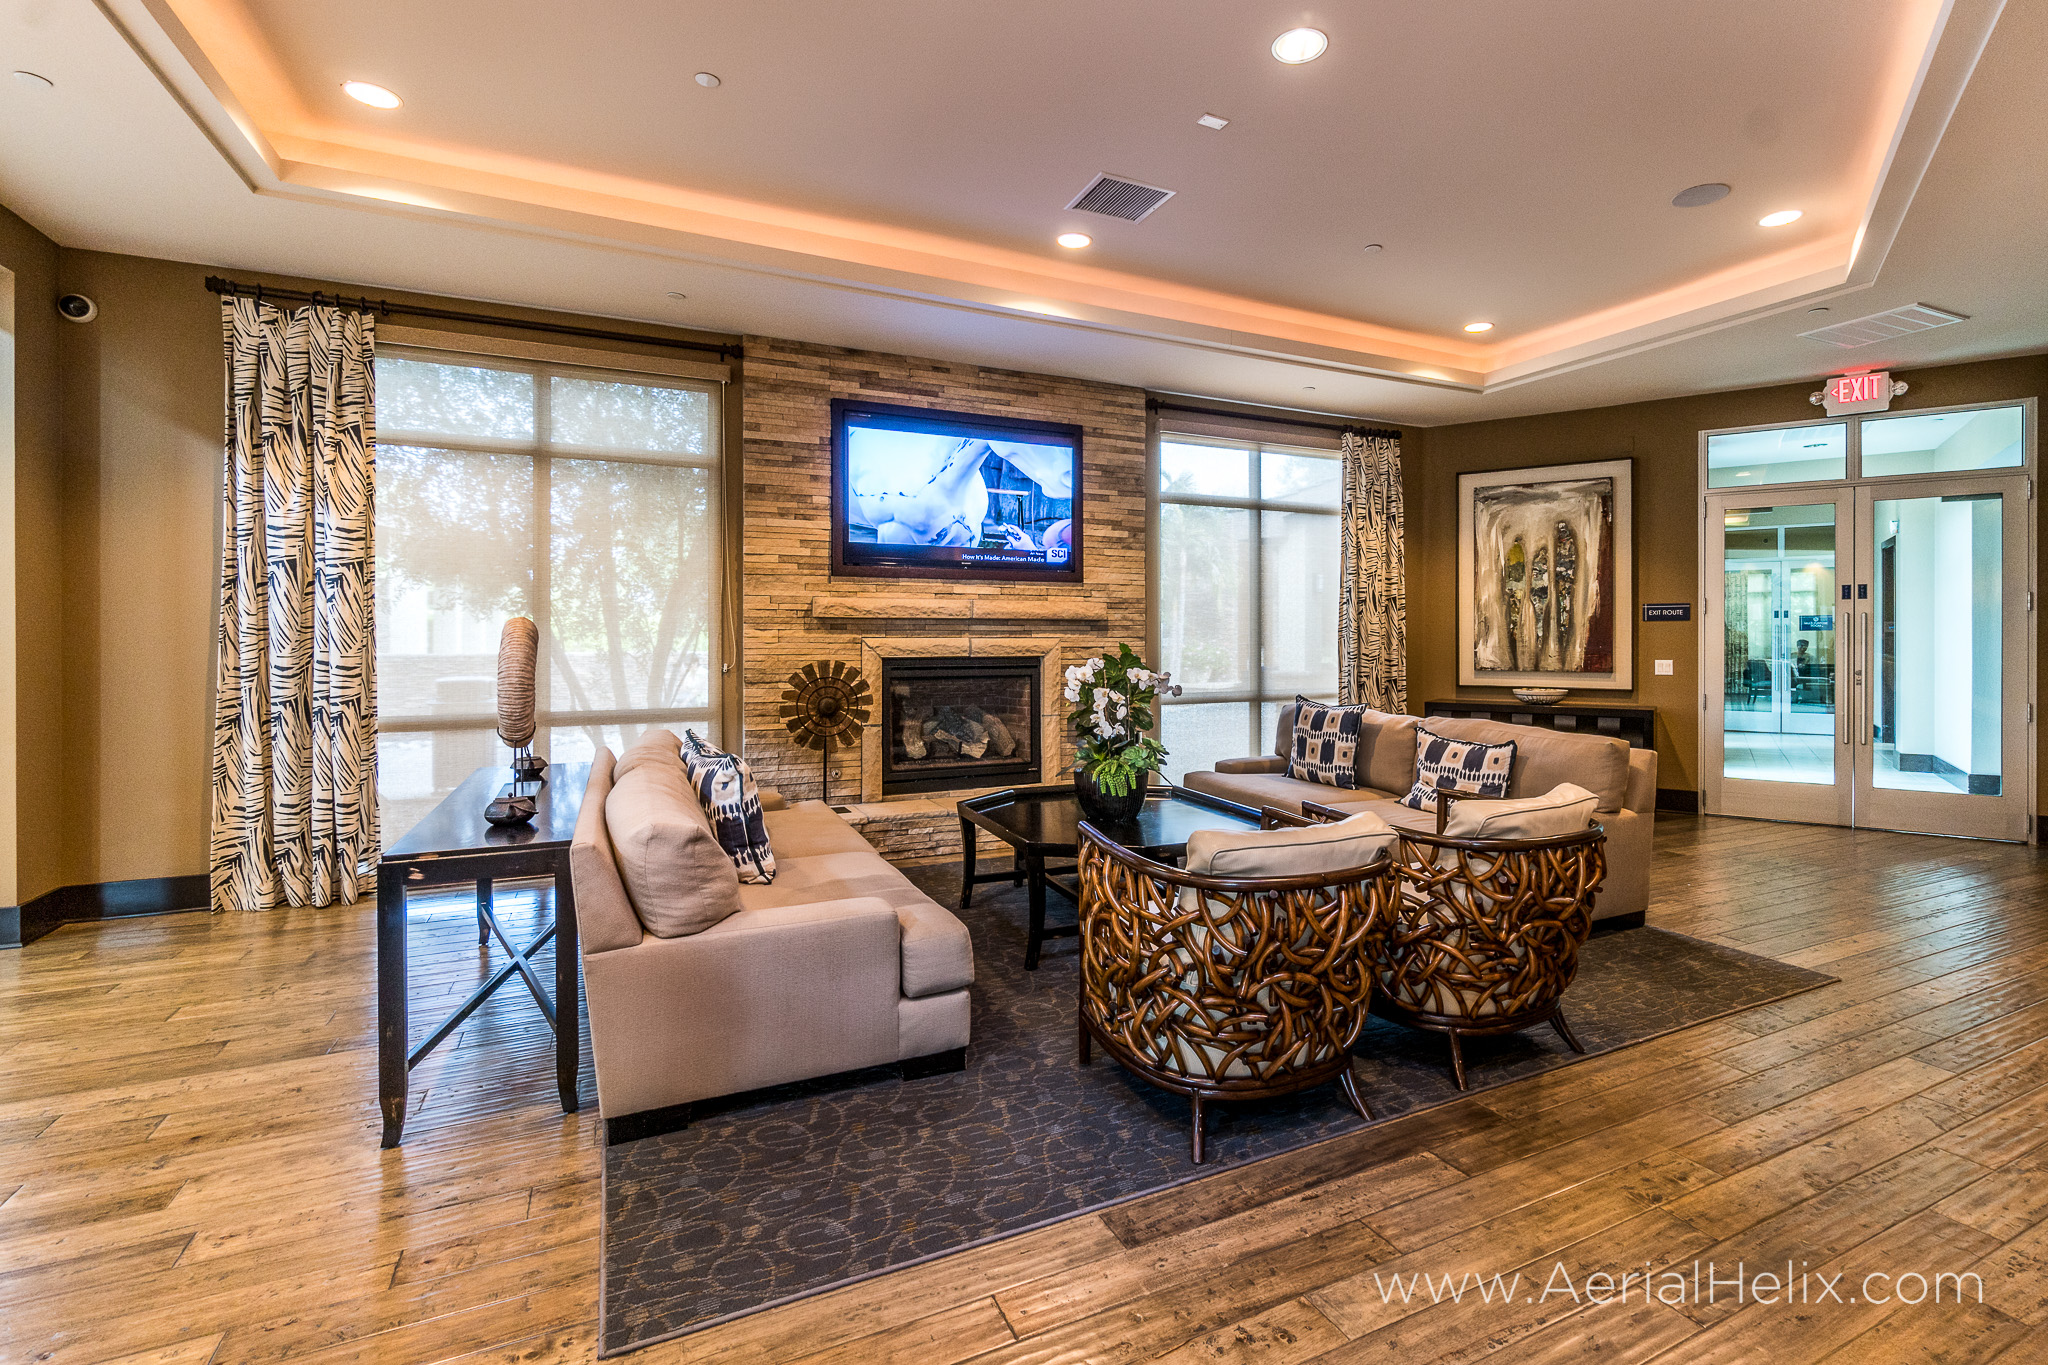 HELIX Morhouse Ave - Real-estate-photographer-4.jpg